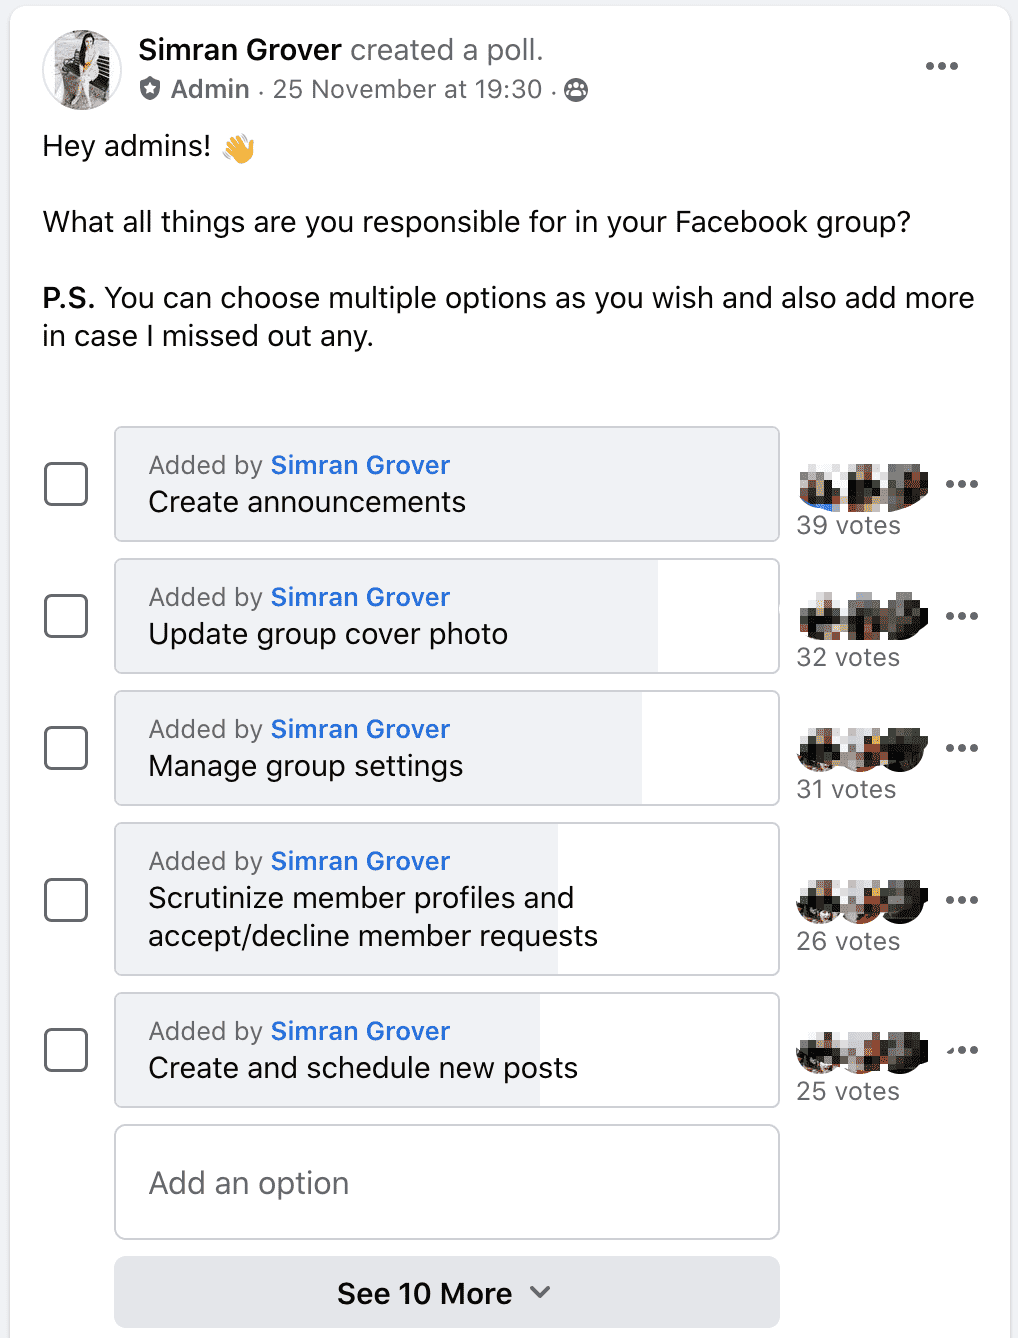 admin poll about Admin Vs Moderator Roles and Responsibilities